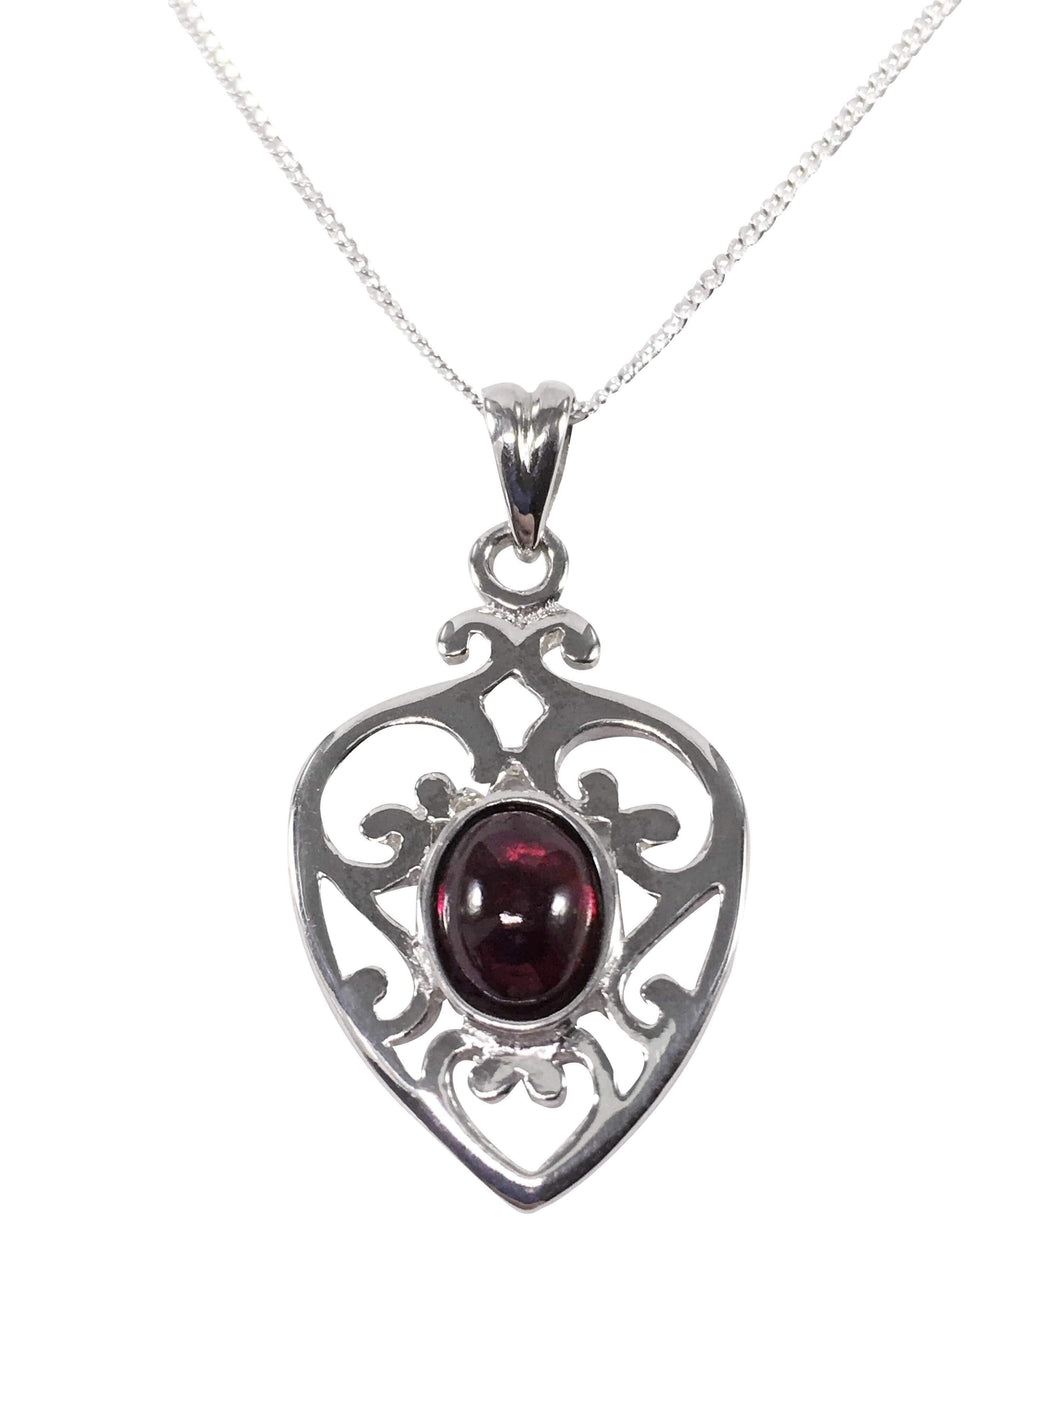 Handmade Sterling Silver And Garnet Gemstone Filigree Heart Necklace